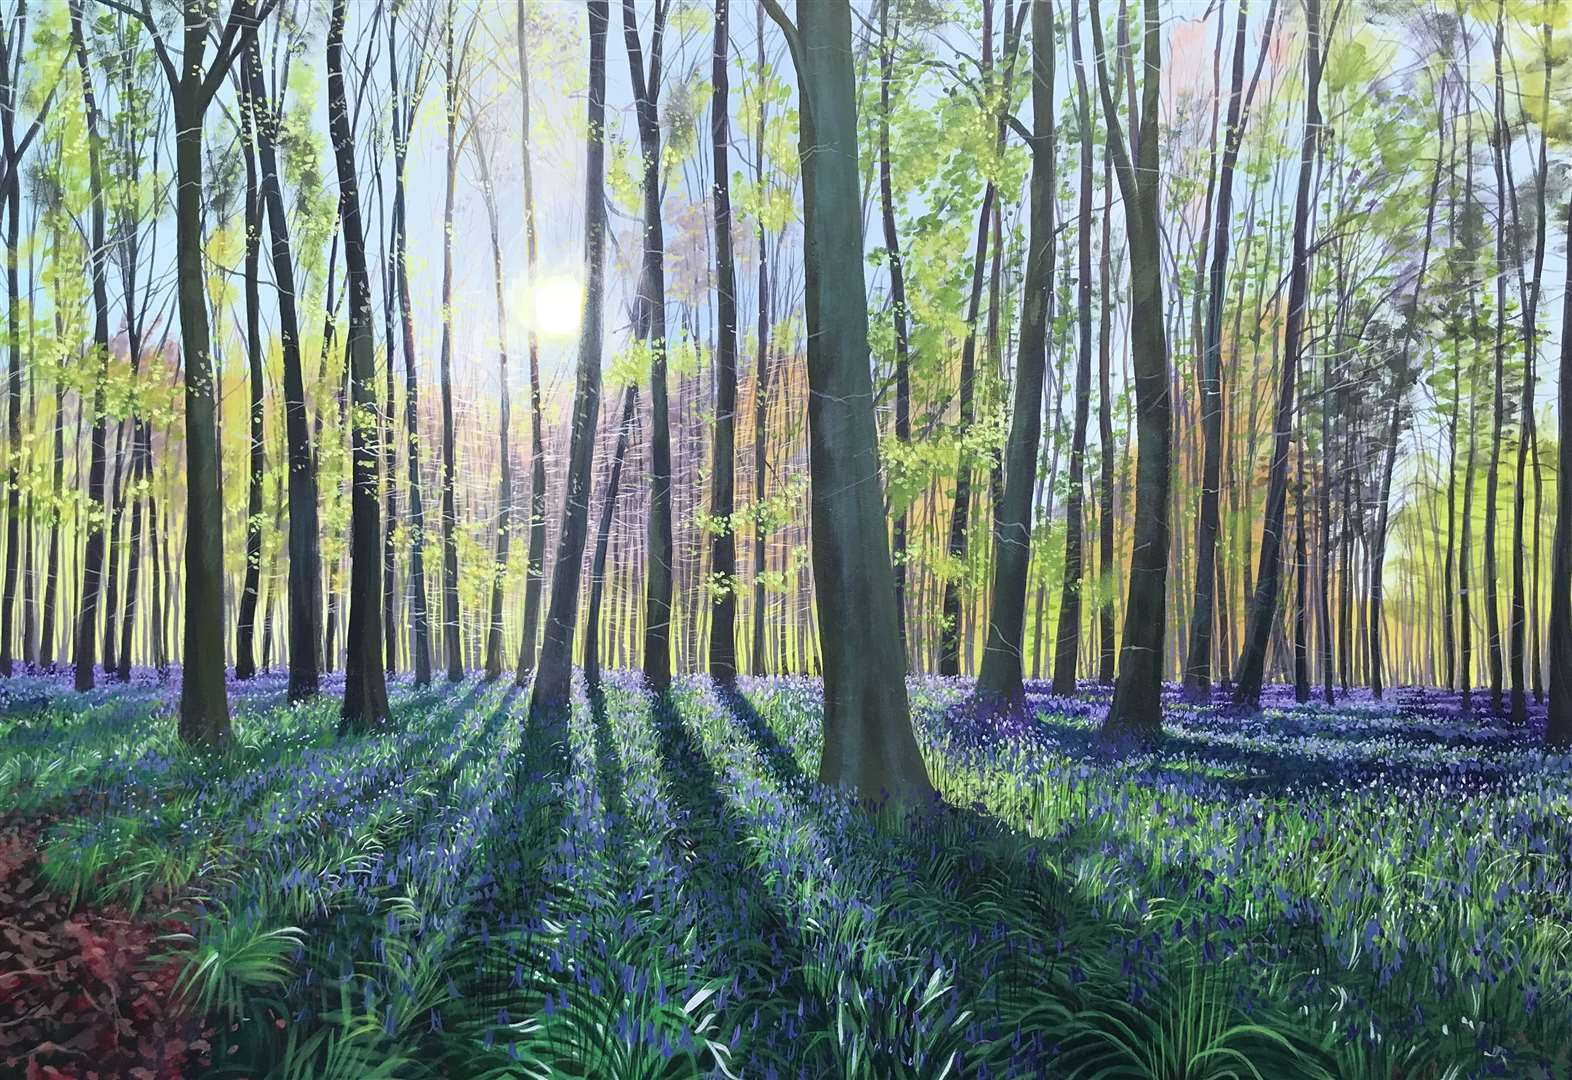 Wandlebury exhibition showcasing the artwork of Debbie Baxter on now